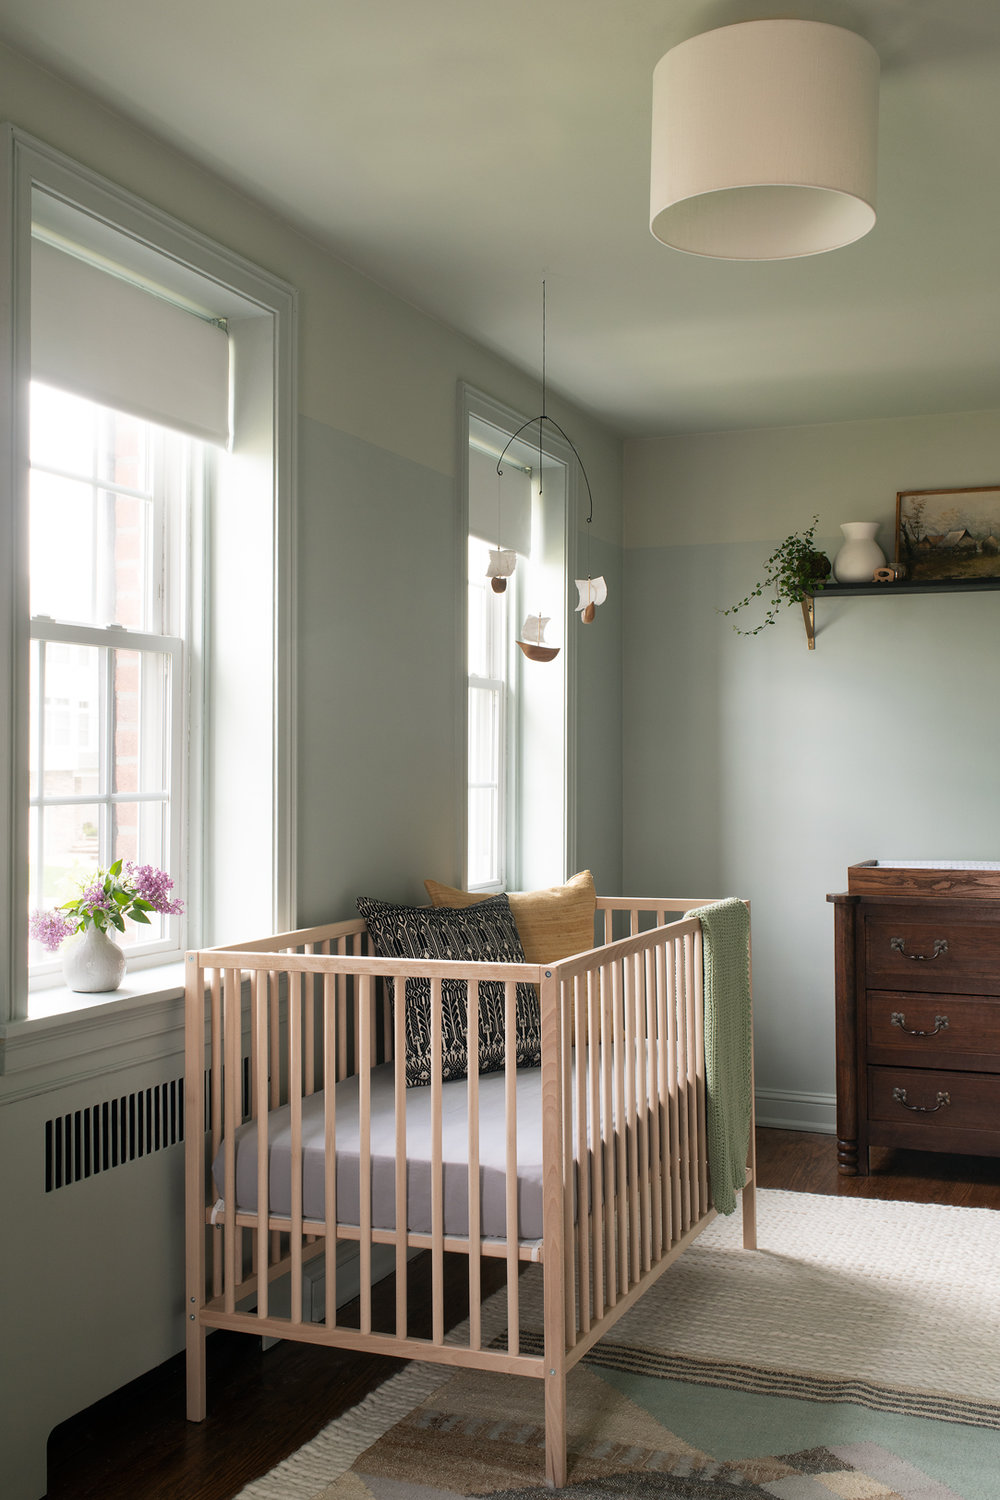 flamingo_nursery_crib.jpg